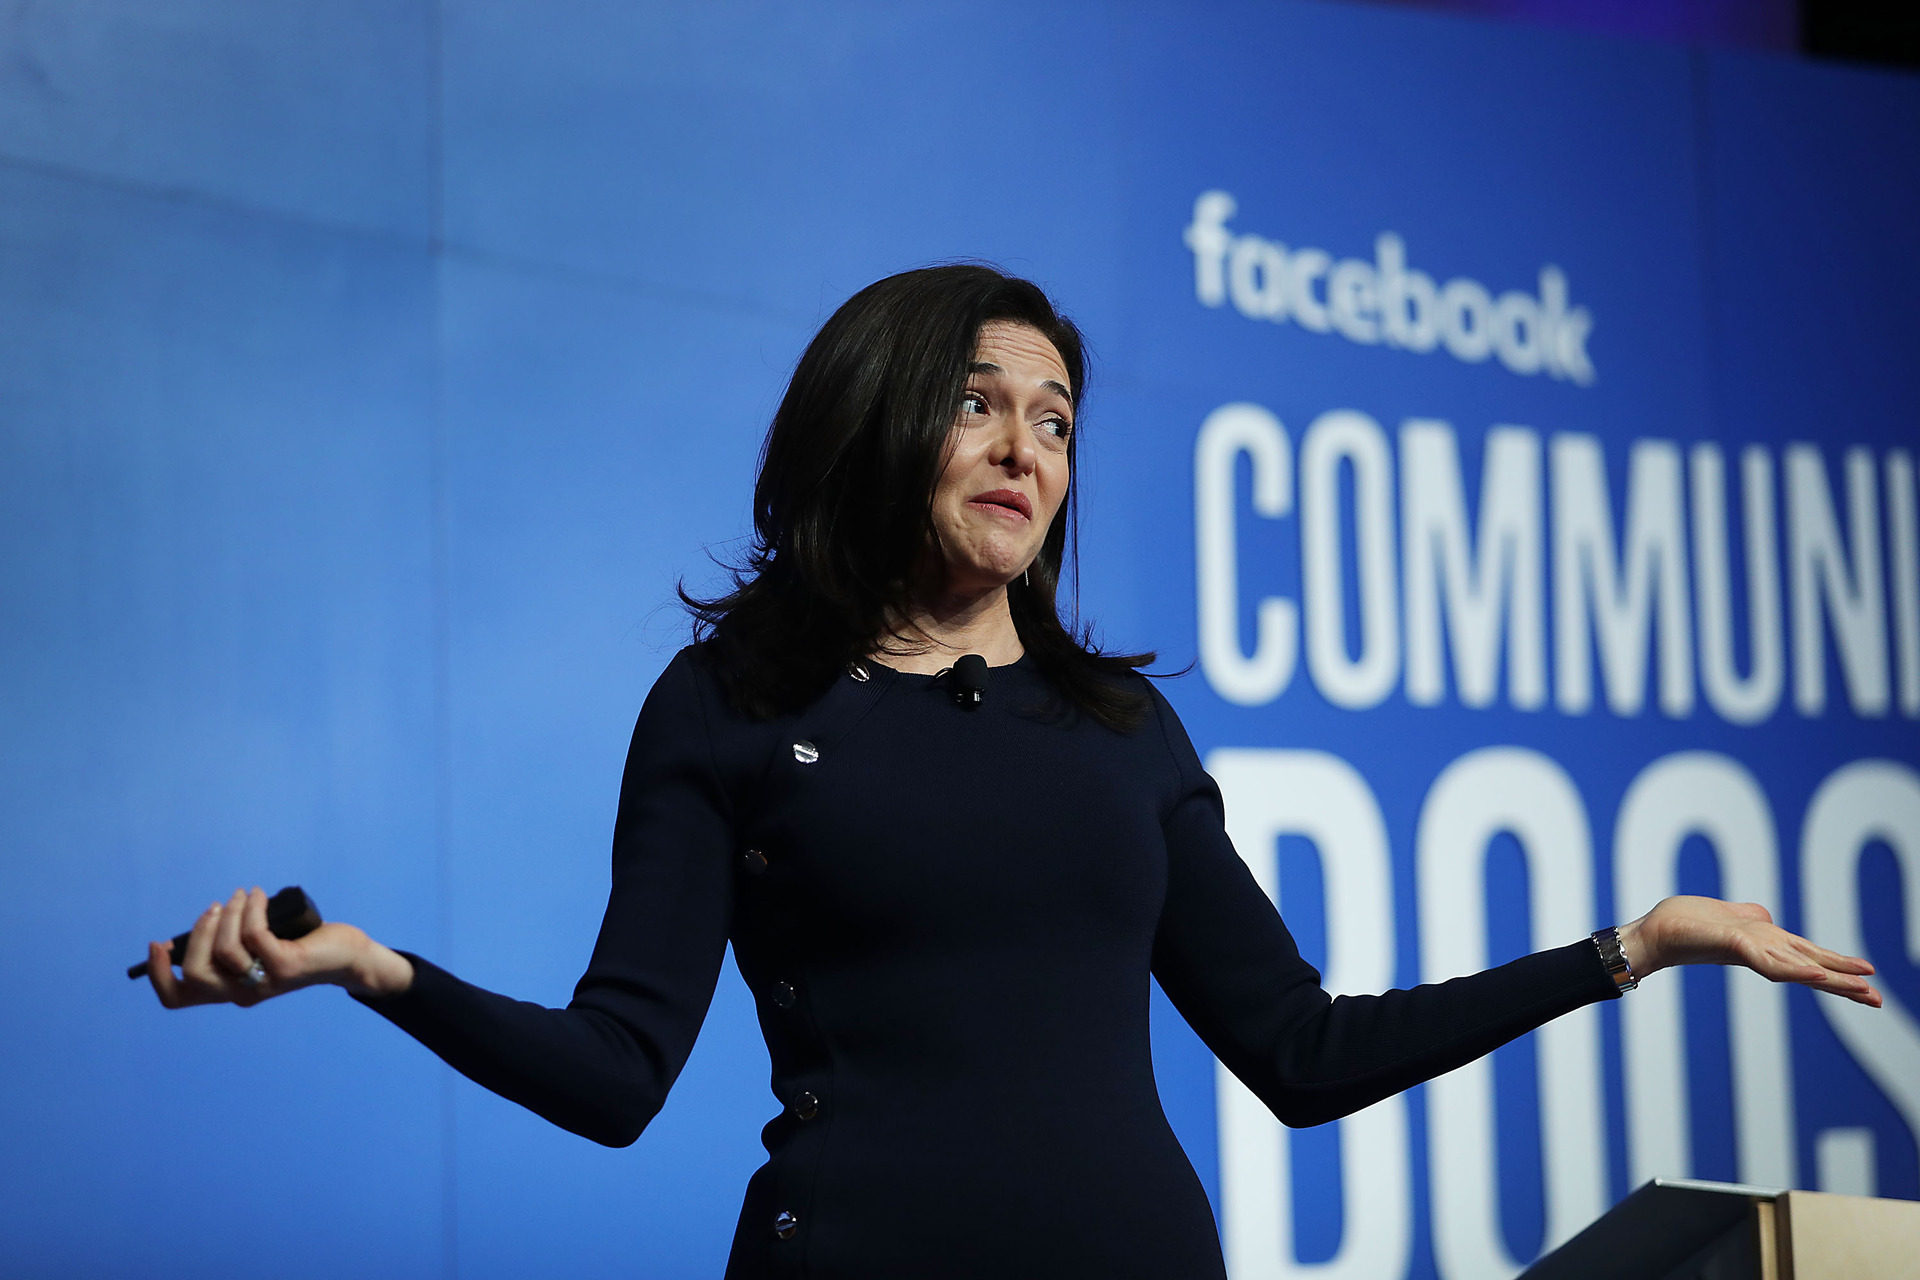 Fran O'Sullivan: Why Facebook has blood on its hands